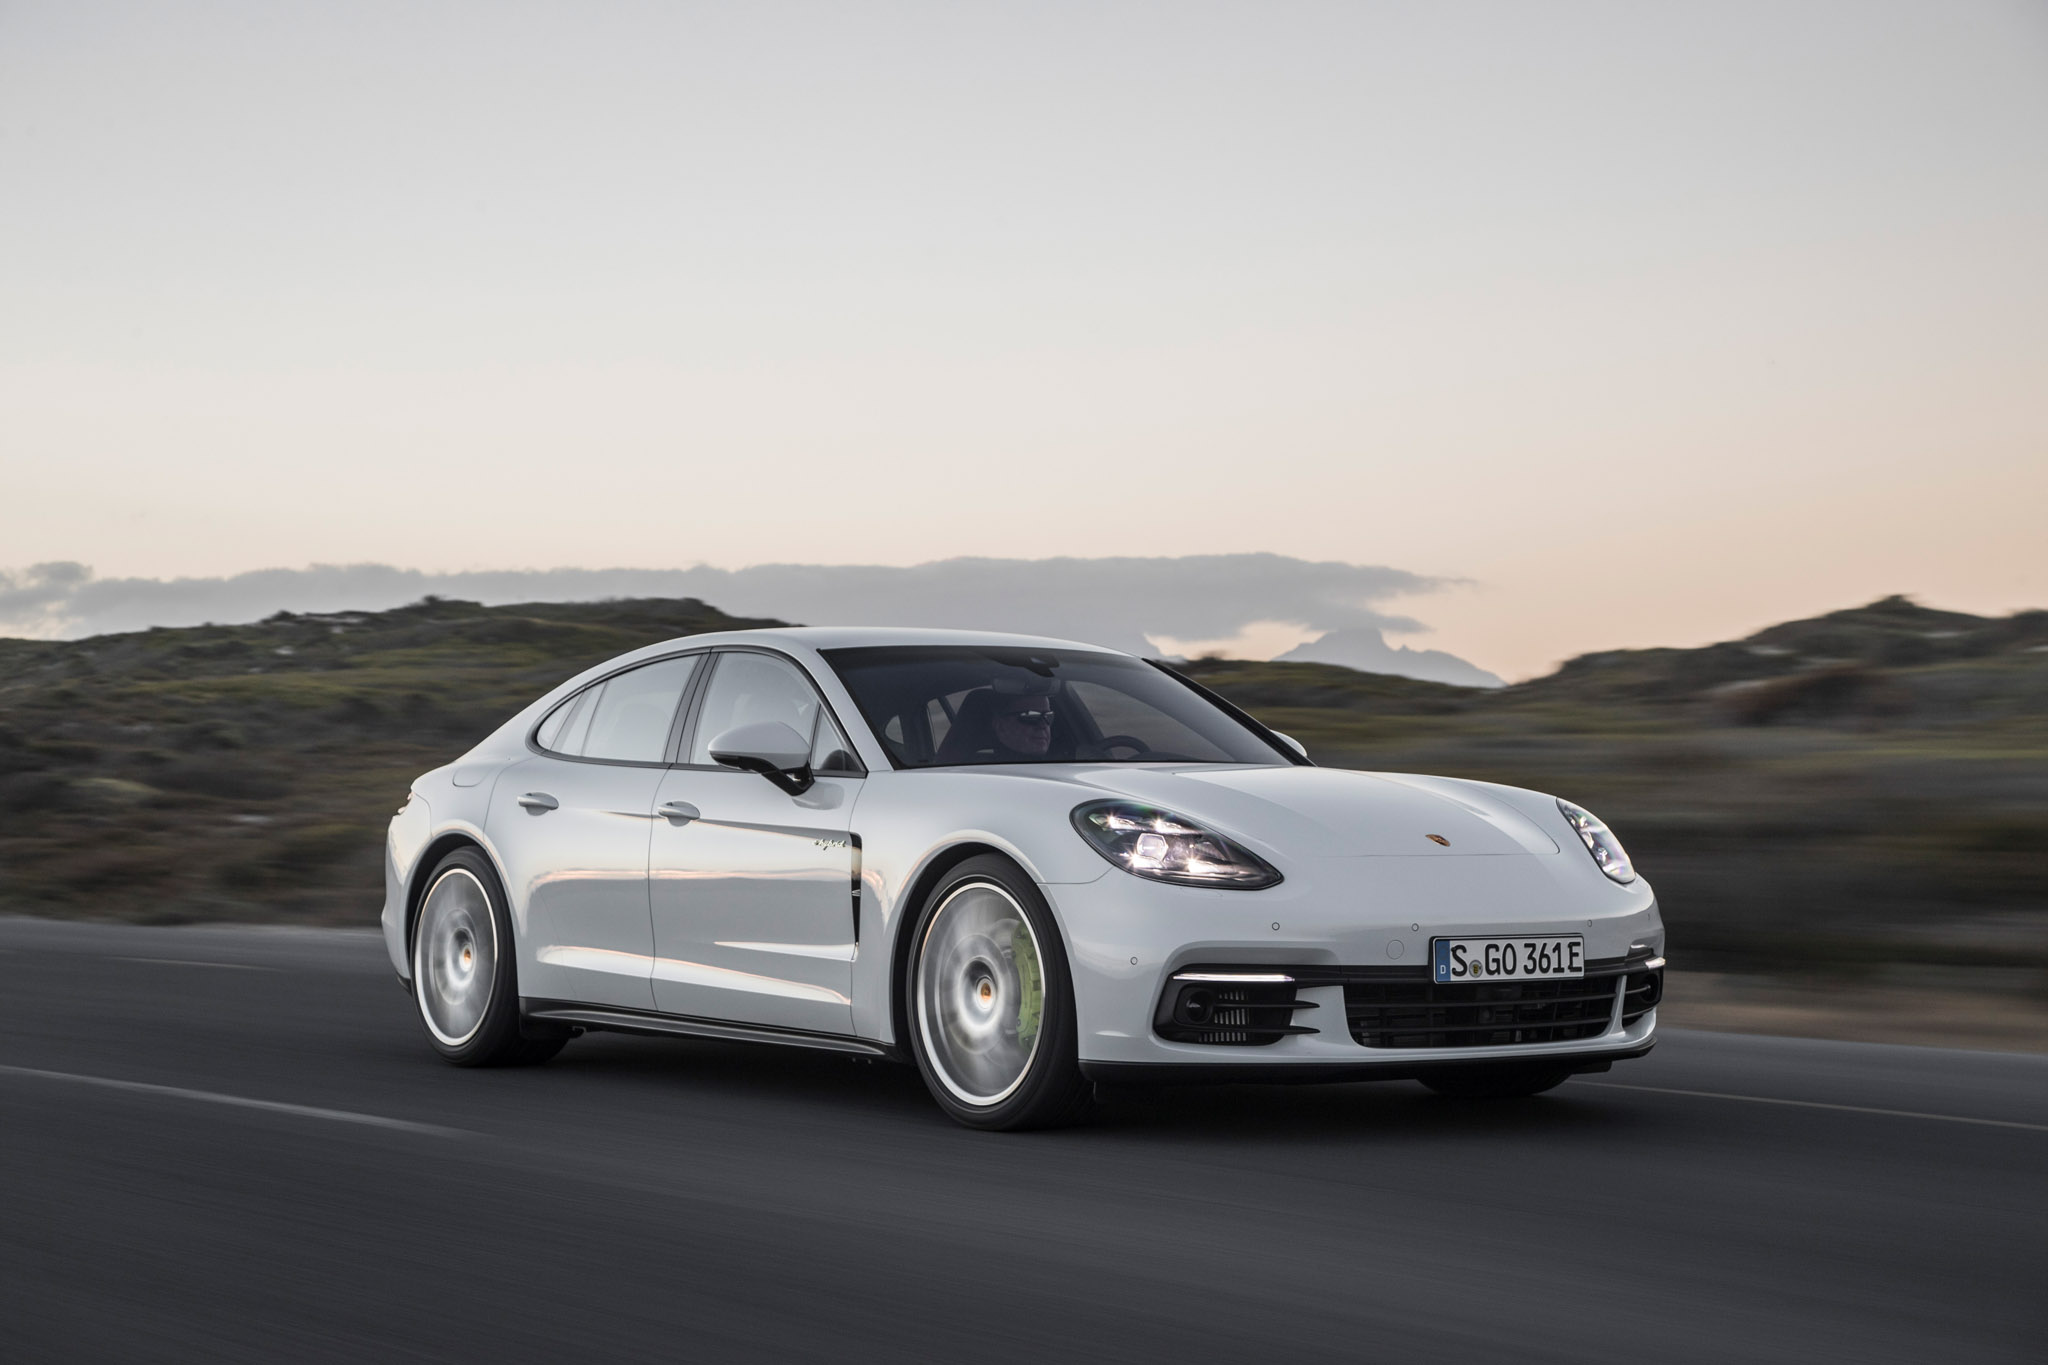 2018 Porsche Panamera 4 E Hybrid Test Drive (View 5 of 10)